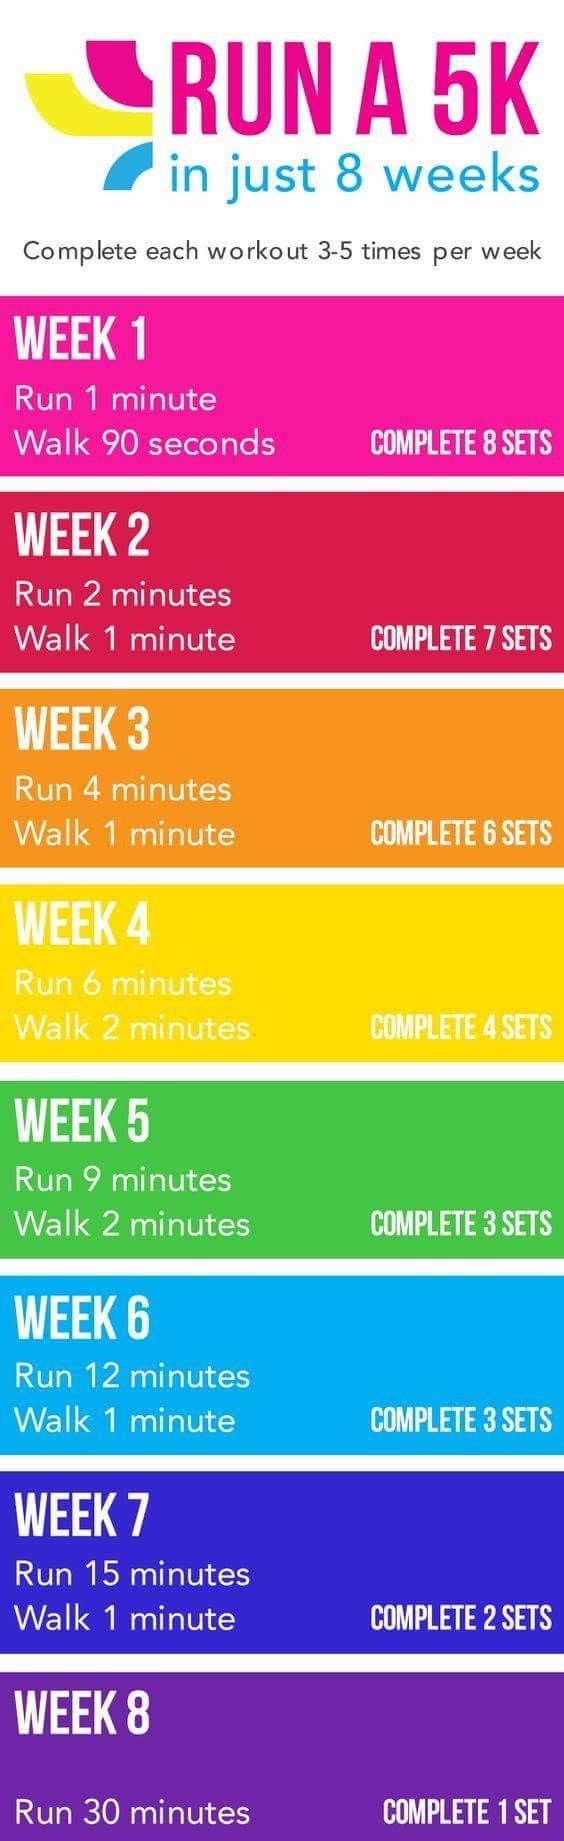 Literally what I have to do to get back into running. I hate falling off the wagon.